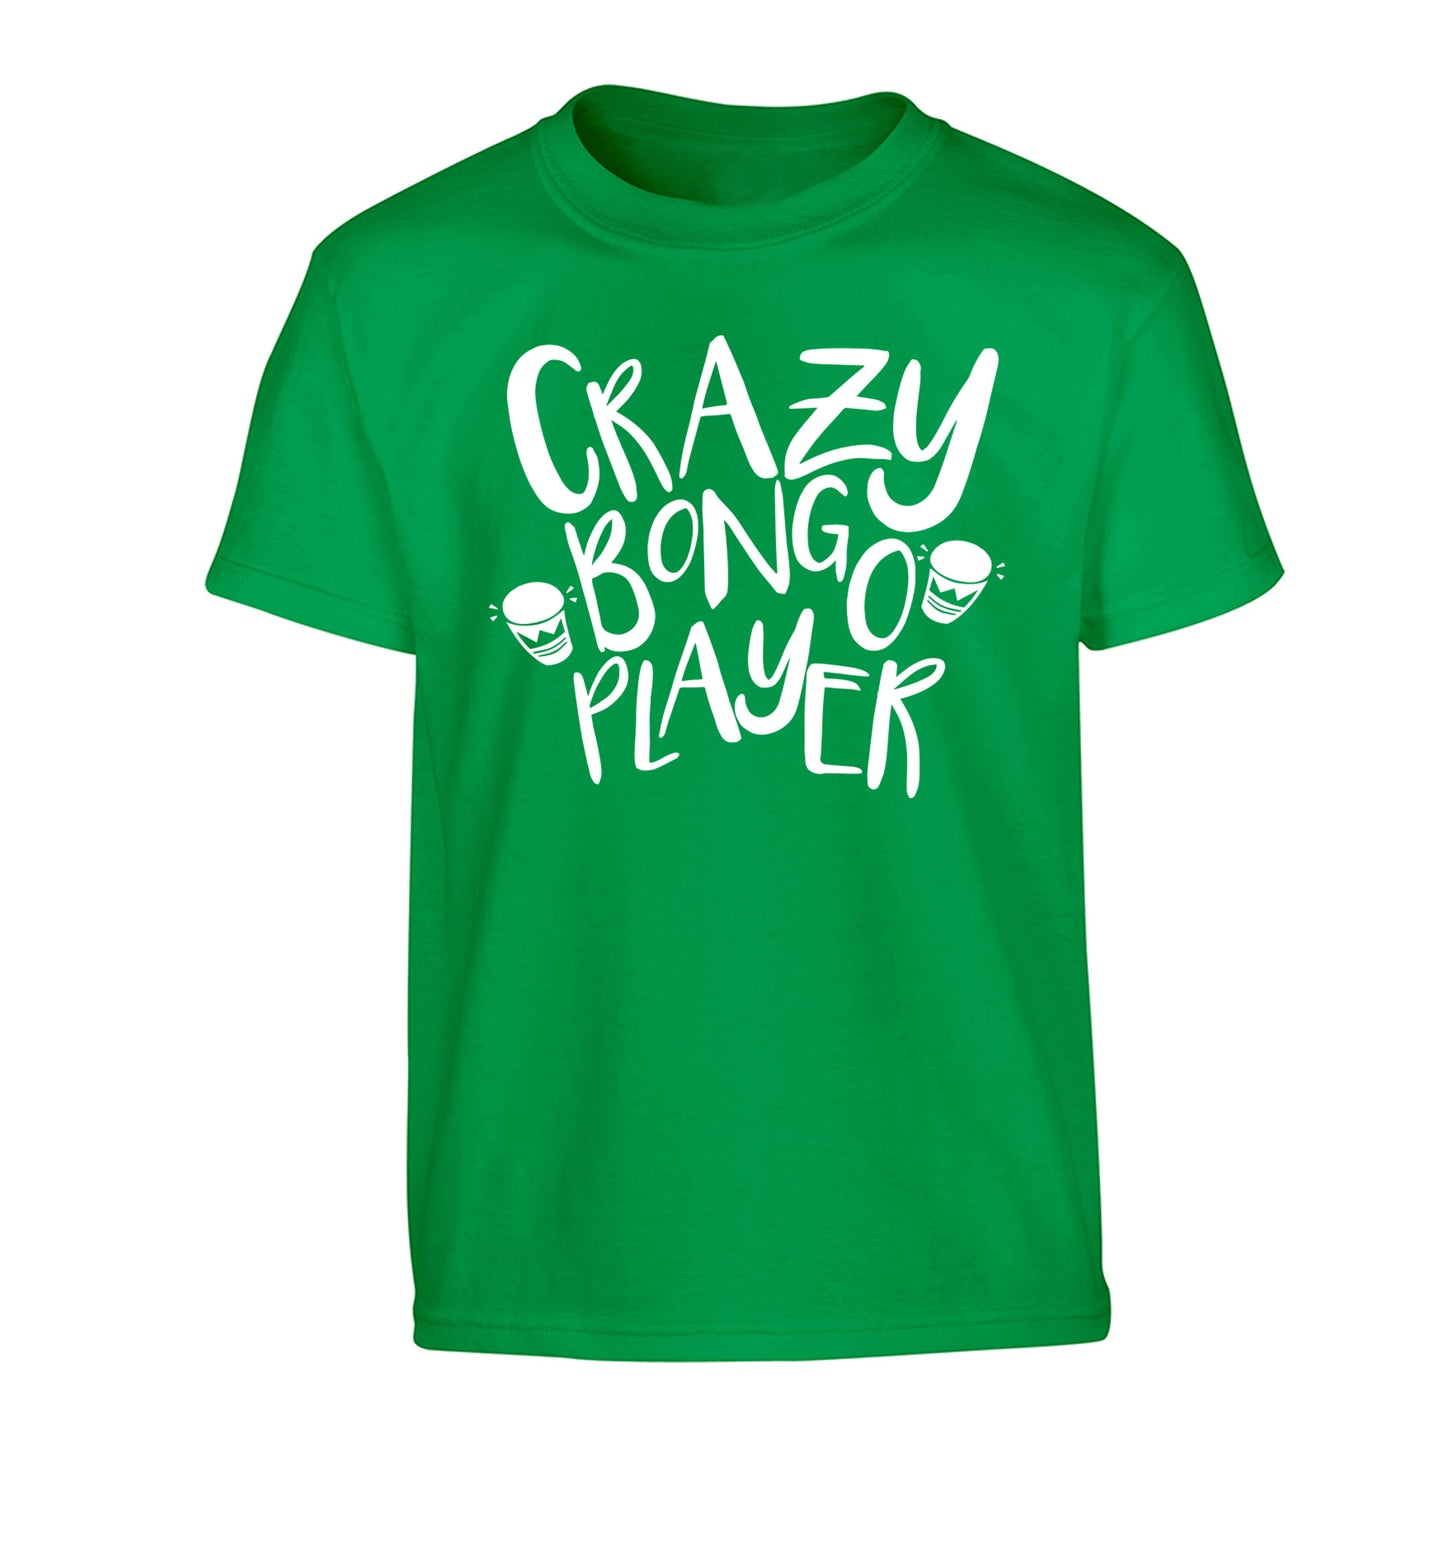 Crazy bongo player Children's green Tshirt 12-14 Years